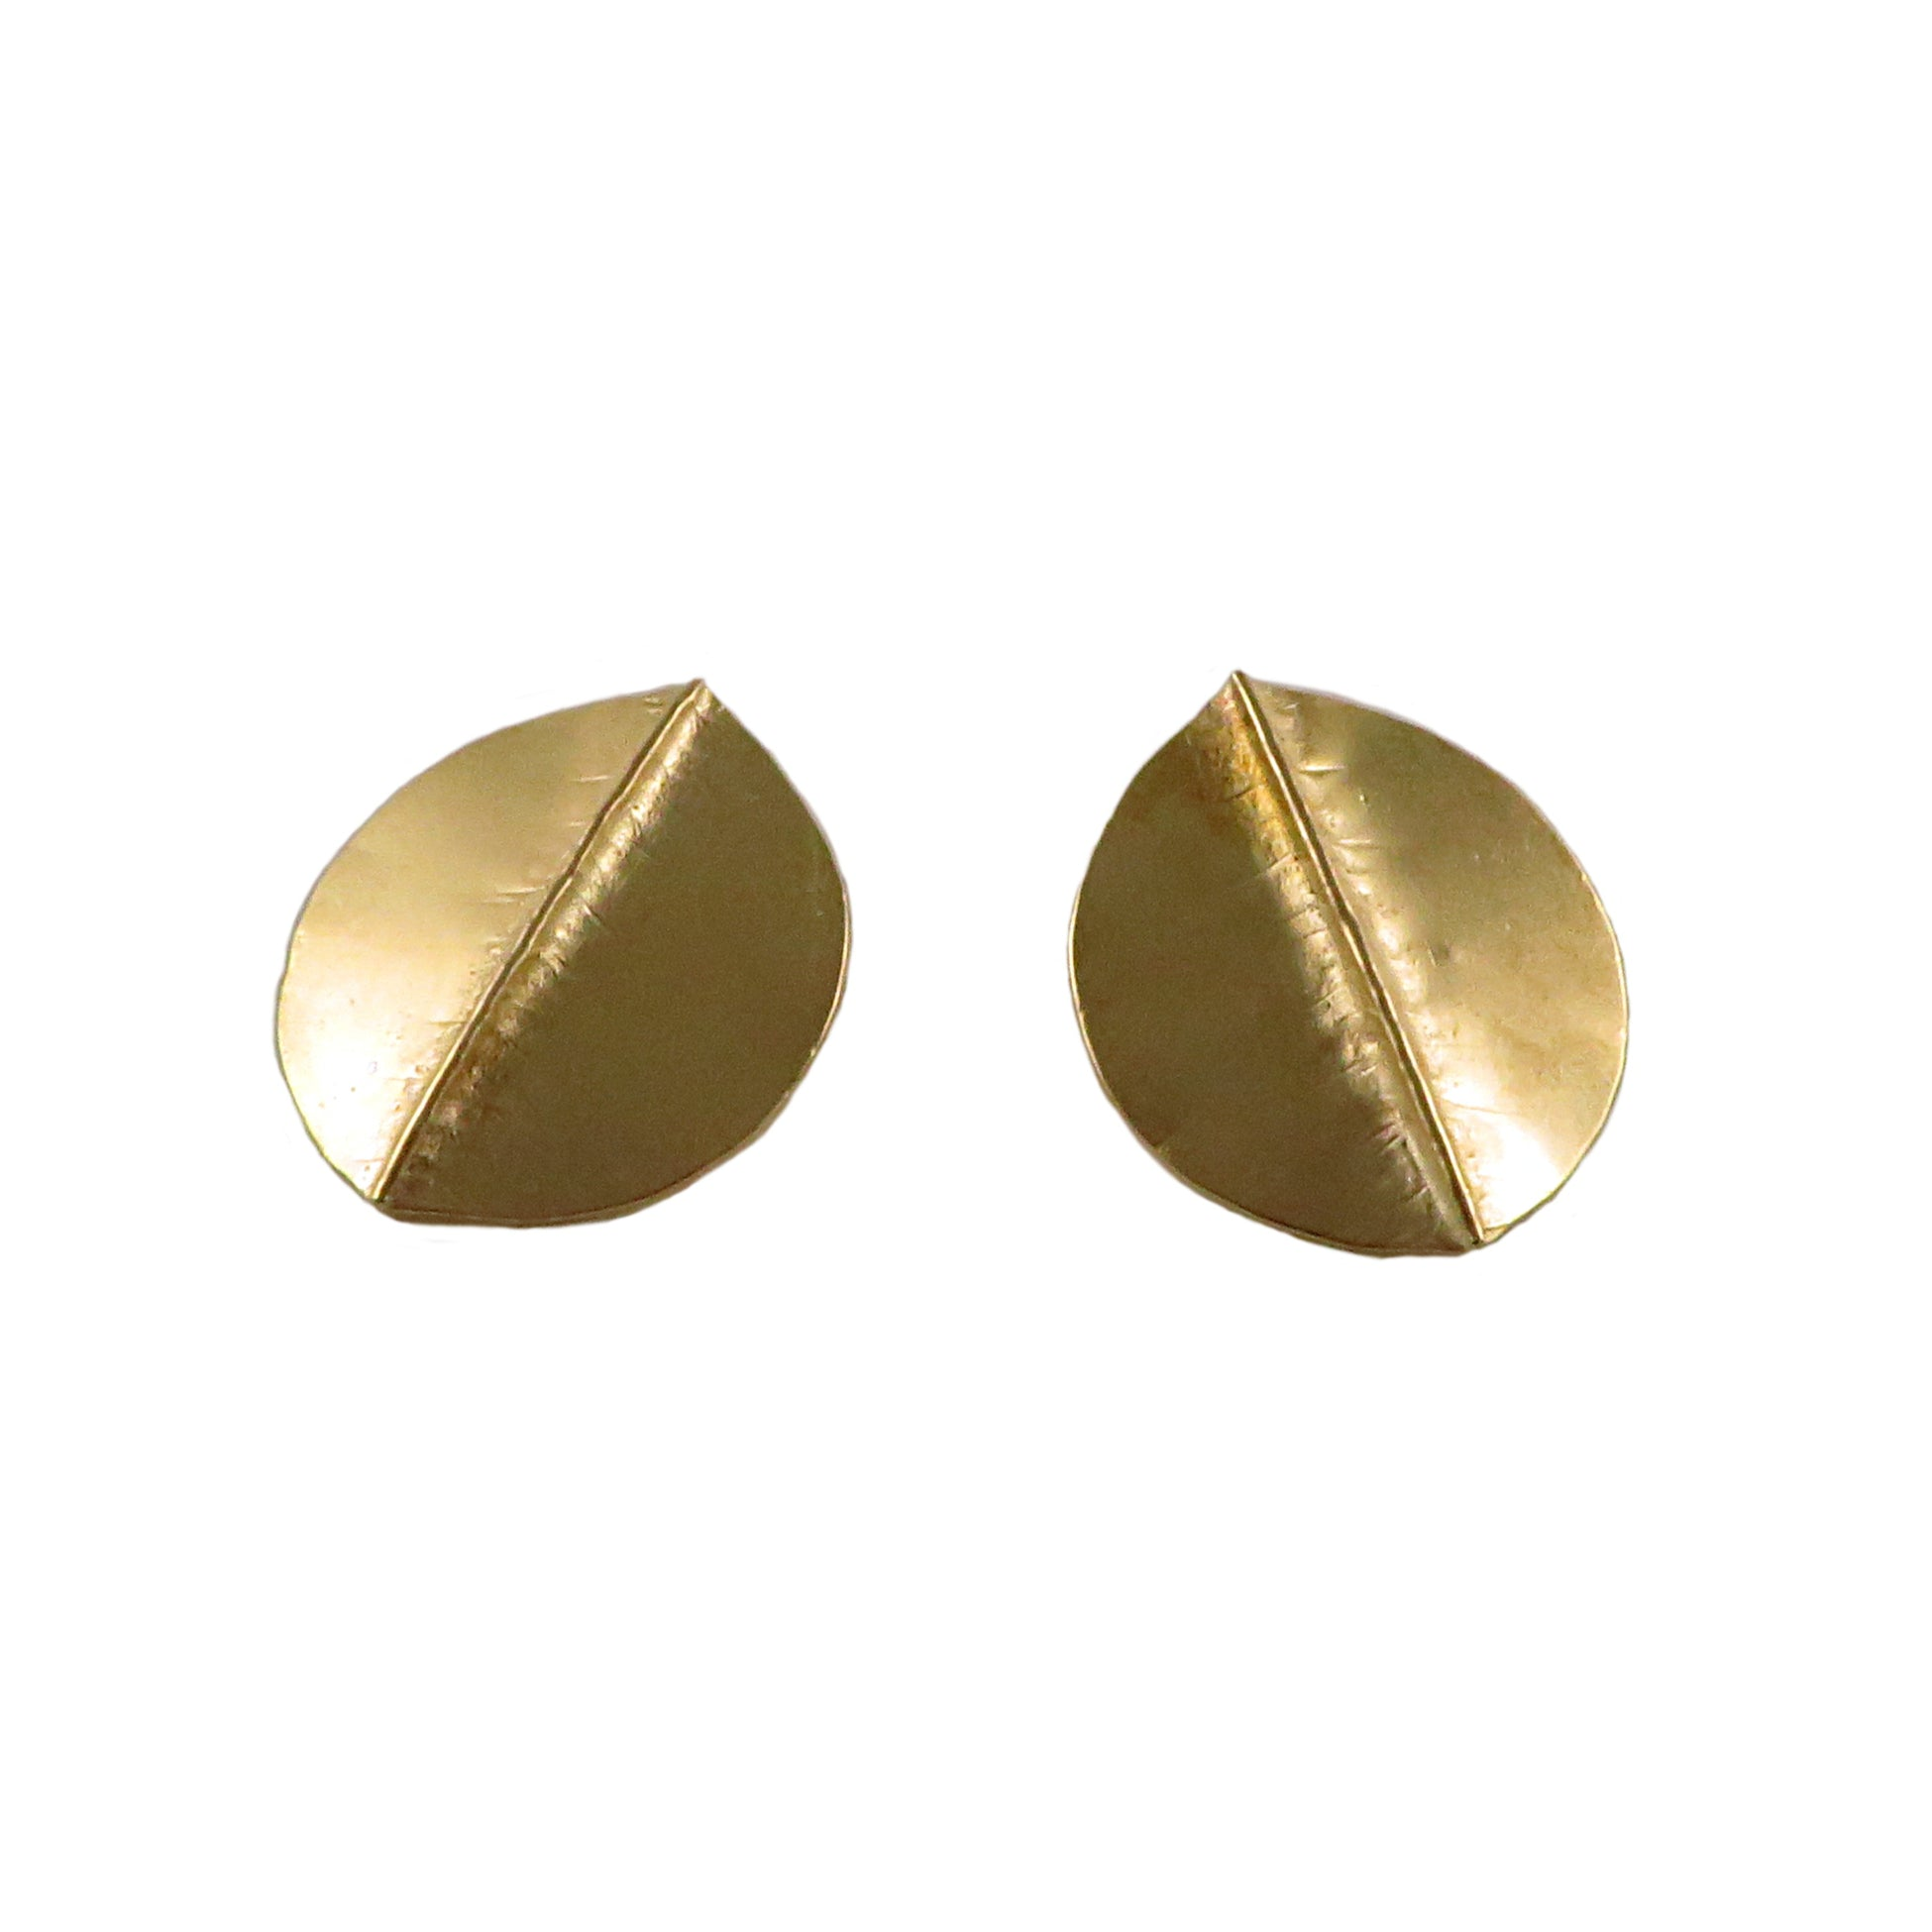 Brass Aspen Foldform Earrings